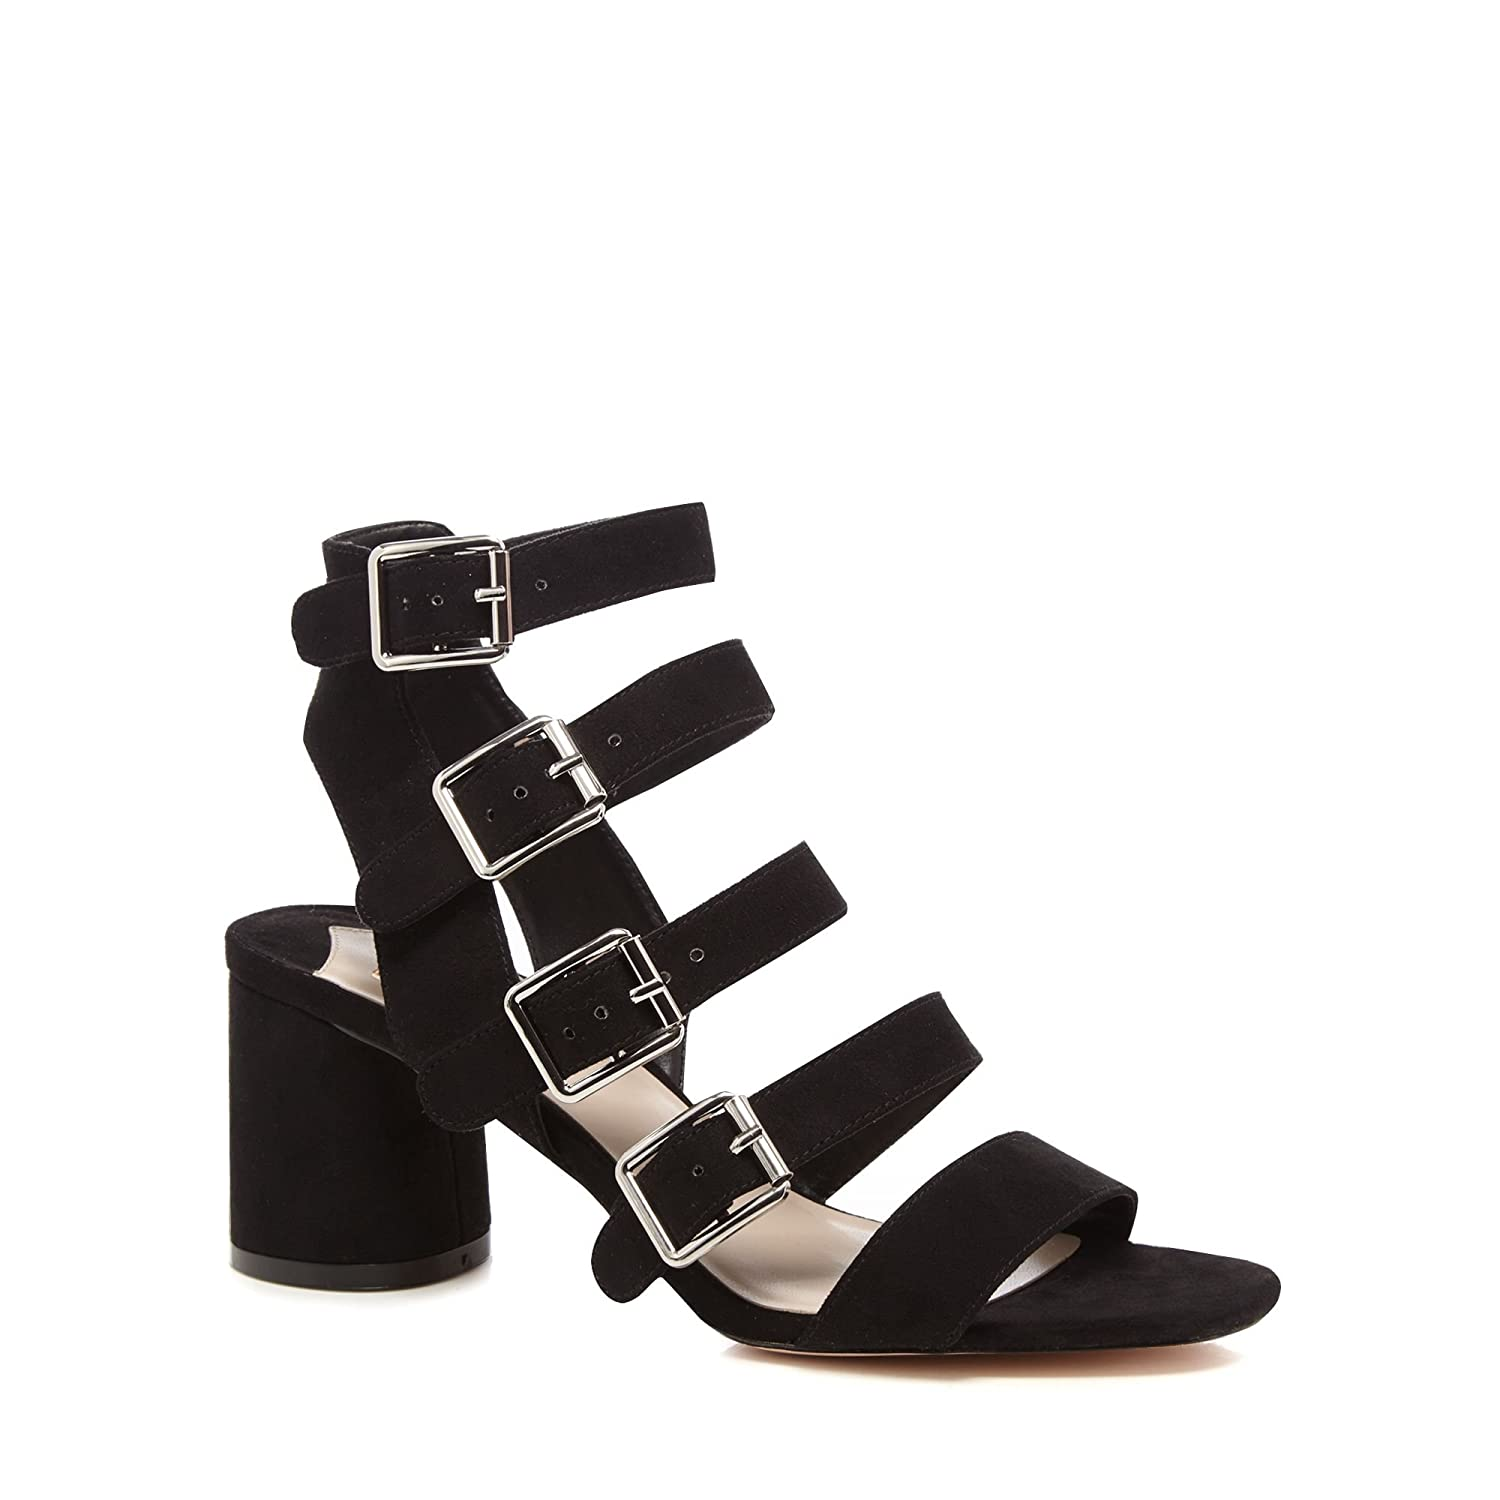 Black suedette 'Dishy' mid block heel ankle strap sandals cheap find great sale eastbay clearance authentic sale store buy cheap best prices NBWGh3EN3z